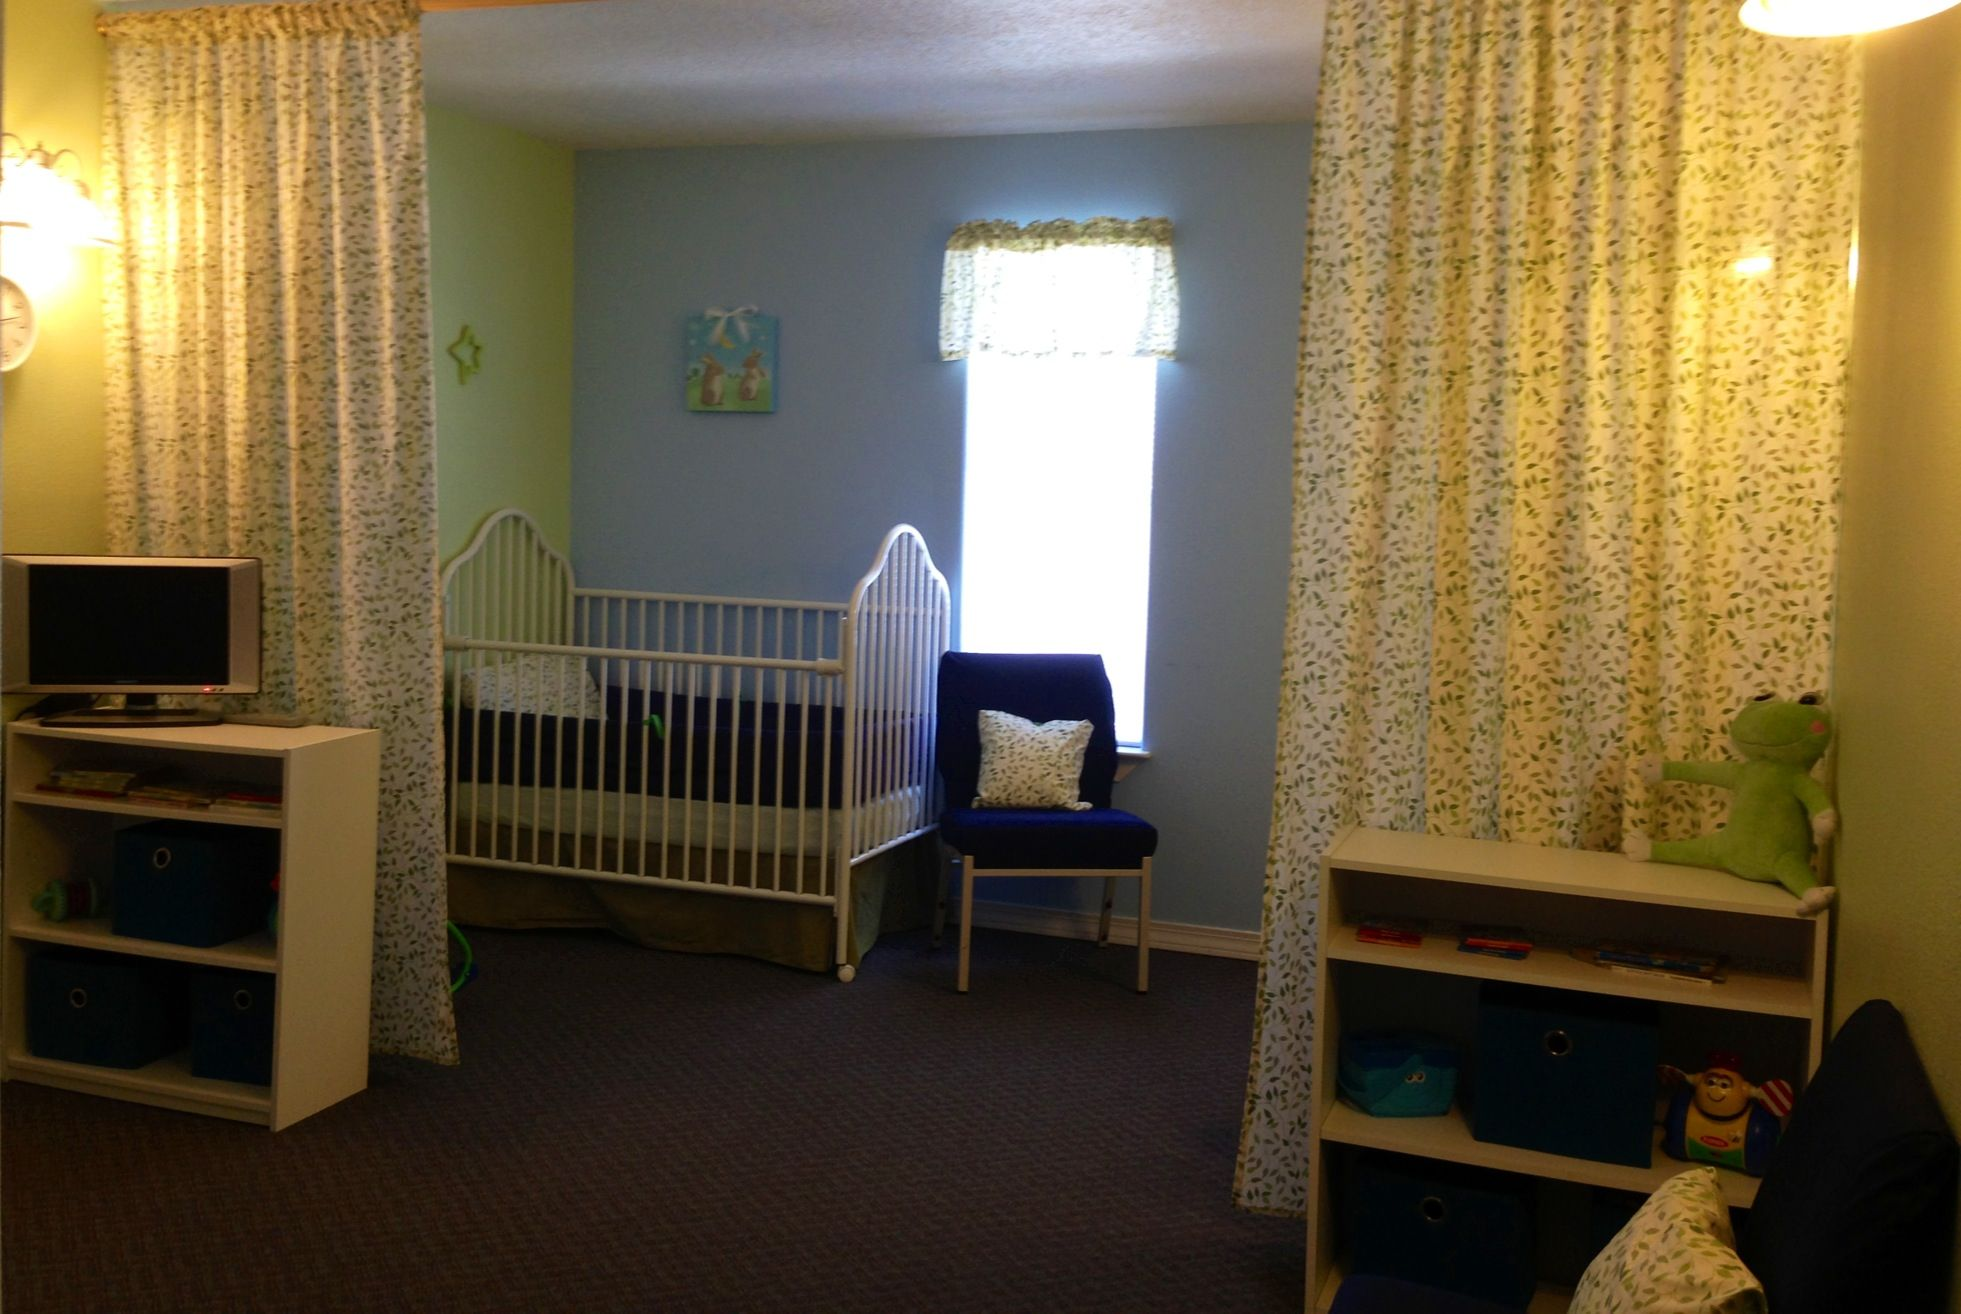 Church Nursery Curtained Nursing And Sleeping Area Jenni Pezley Church Nursery Decor Church Nursery Baby Nursery Wall Colors